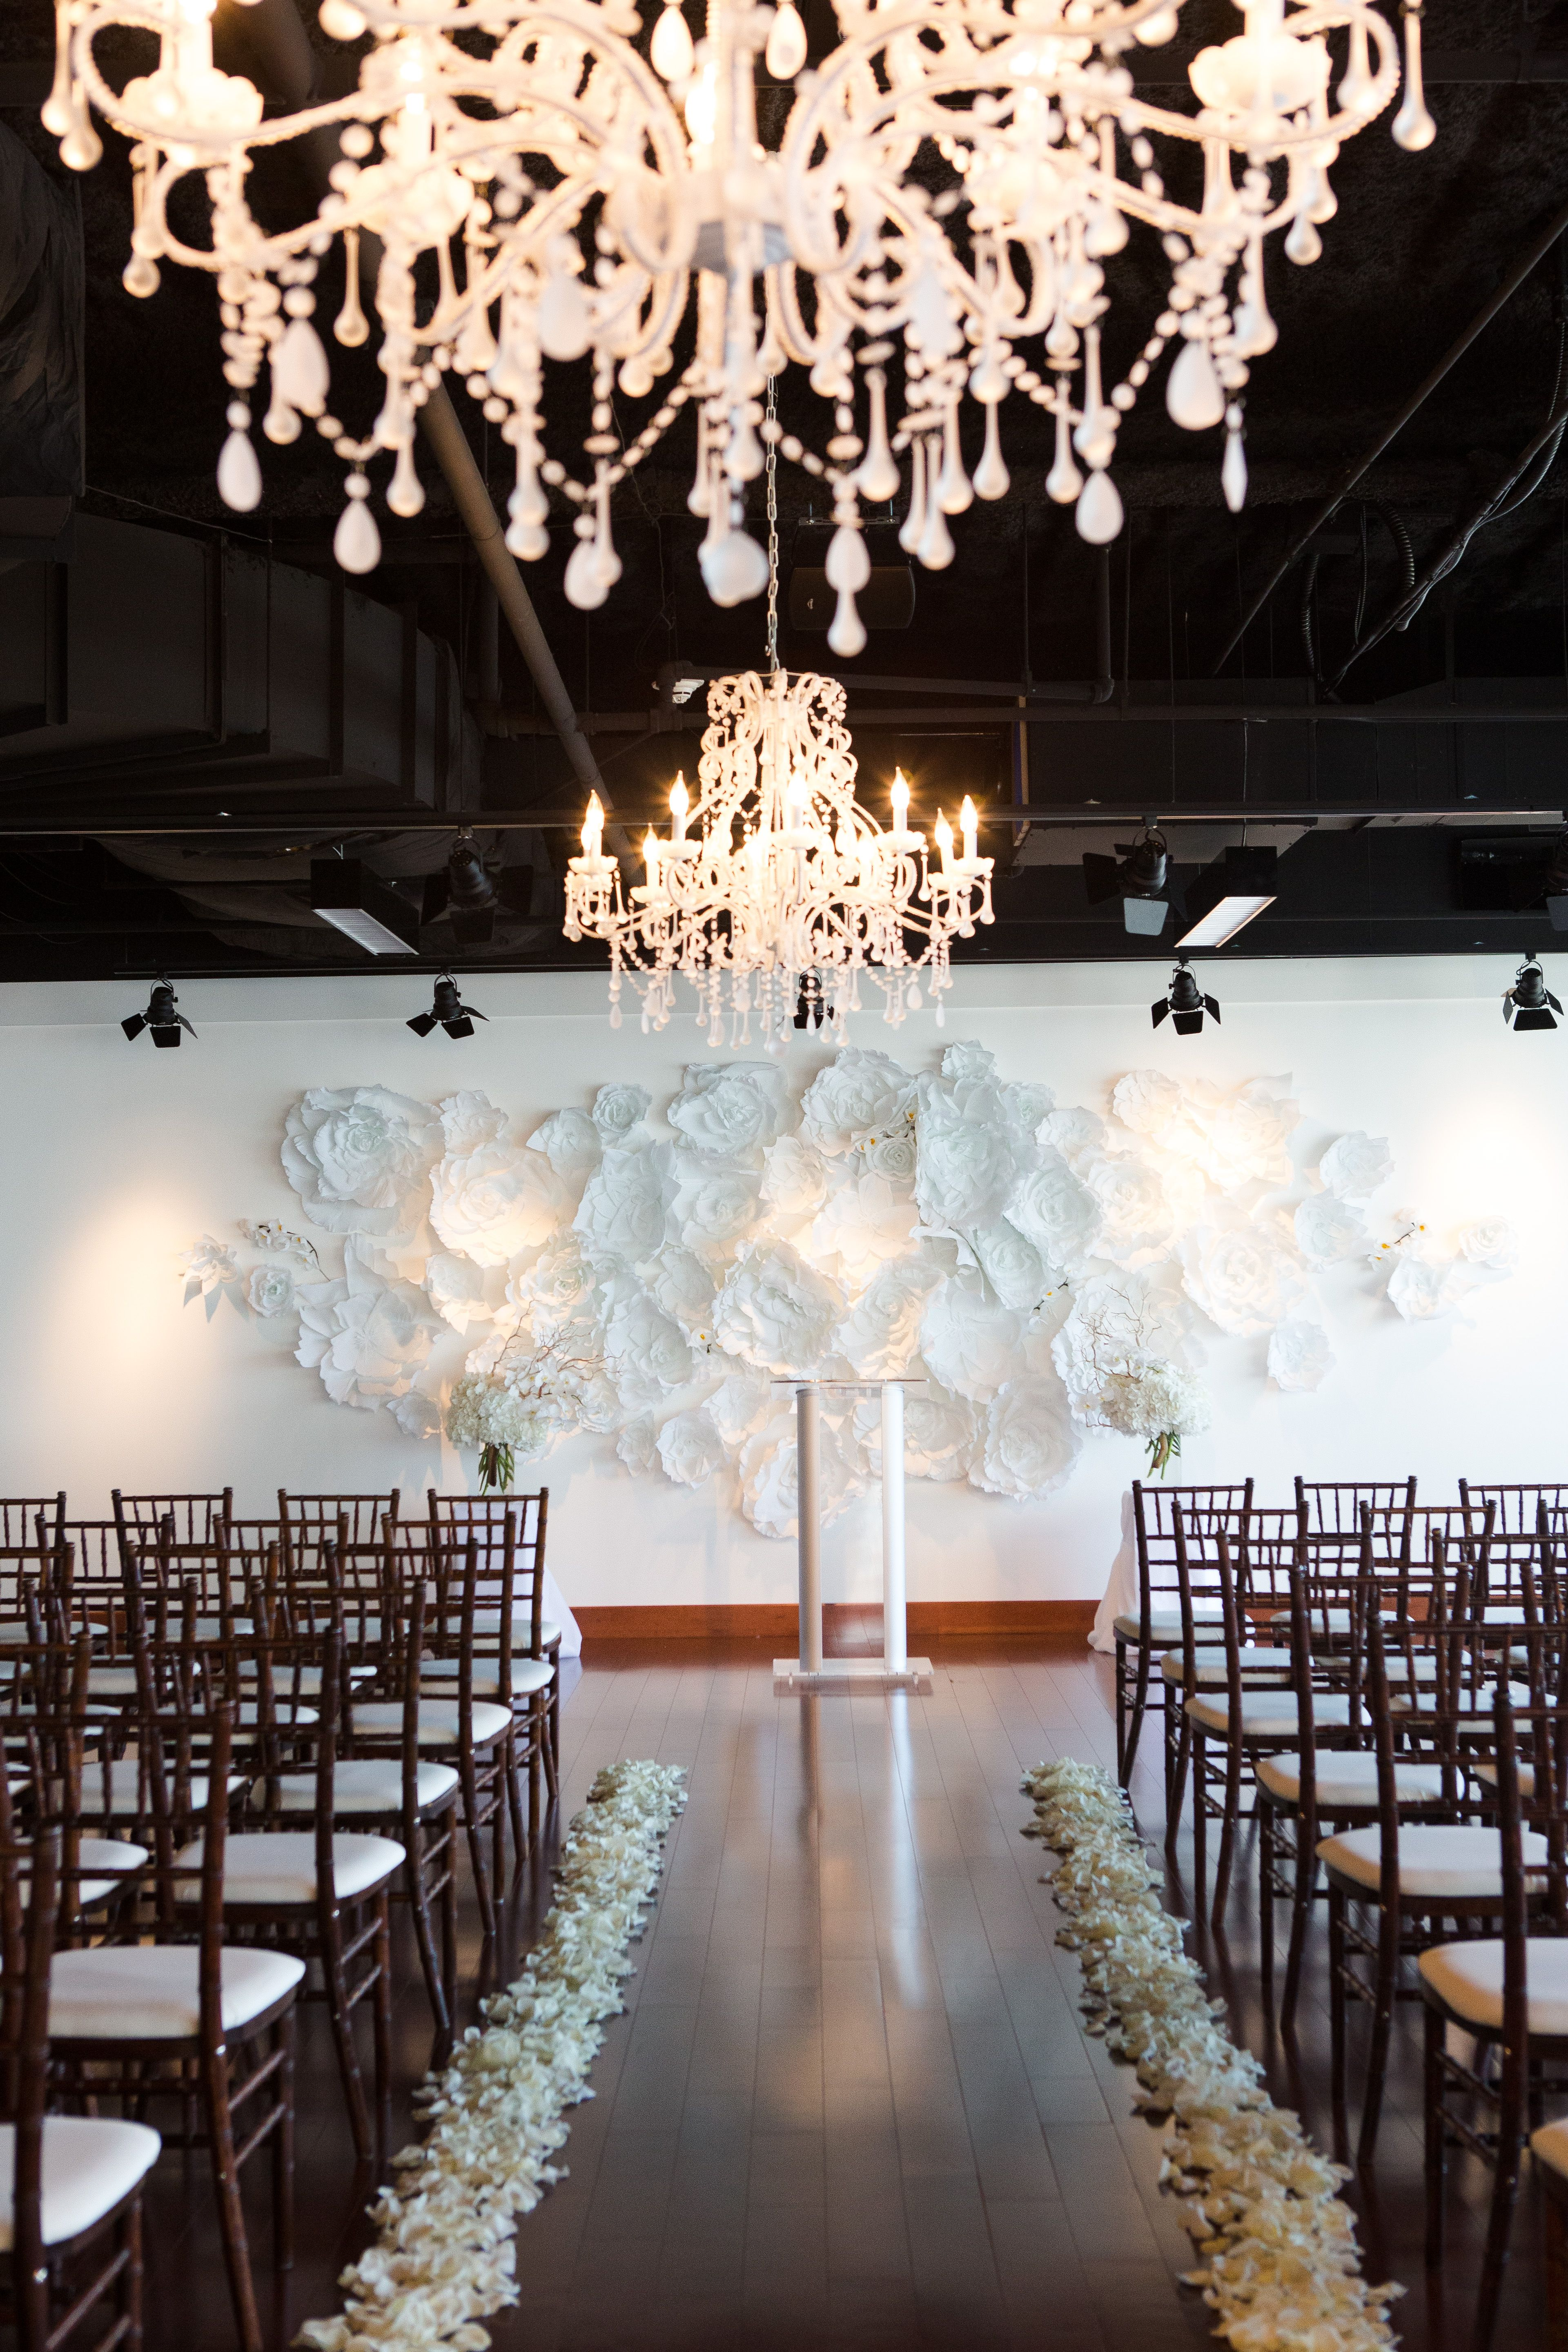 Mmj Events Ivory Room Columbus Ohio Wedding Ceremony White Tall Centerpieces Peach Green Blush Pink Glamorous Flower Wall: Unique Wedding Venues Columbus Ohio At Websimilar.org